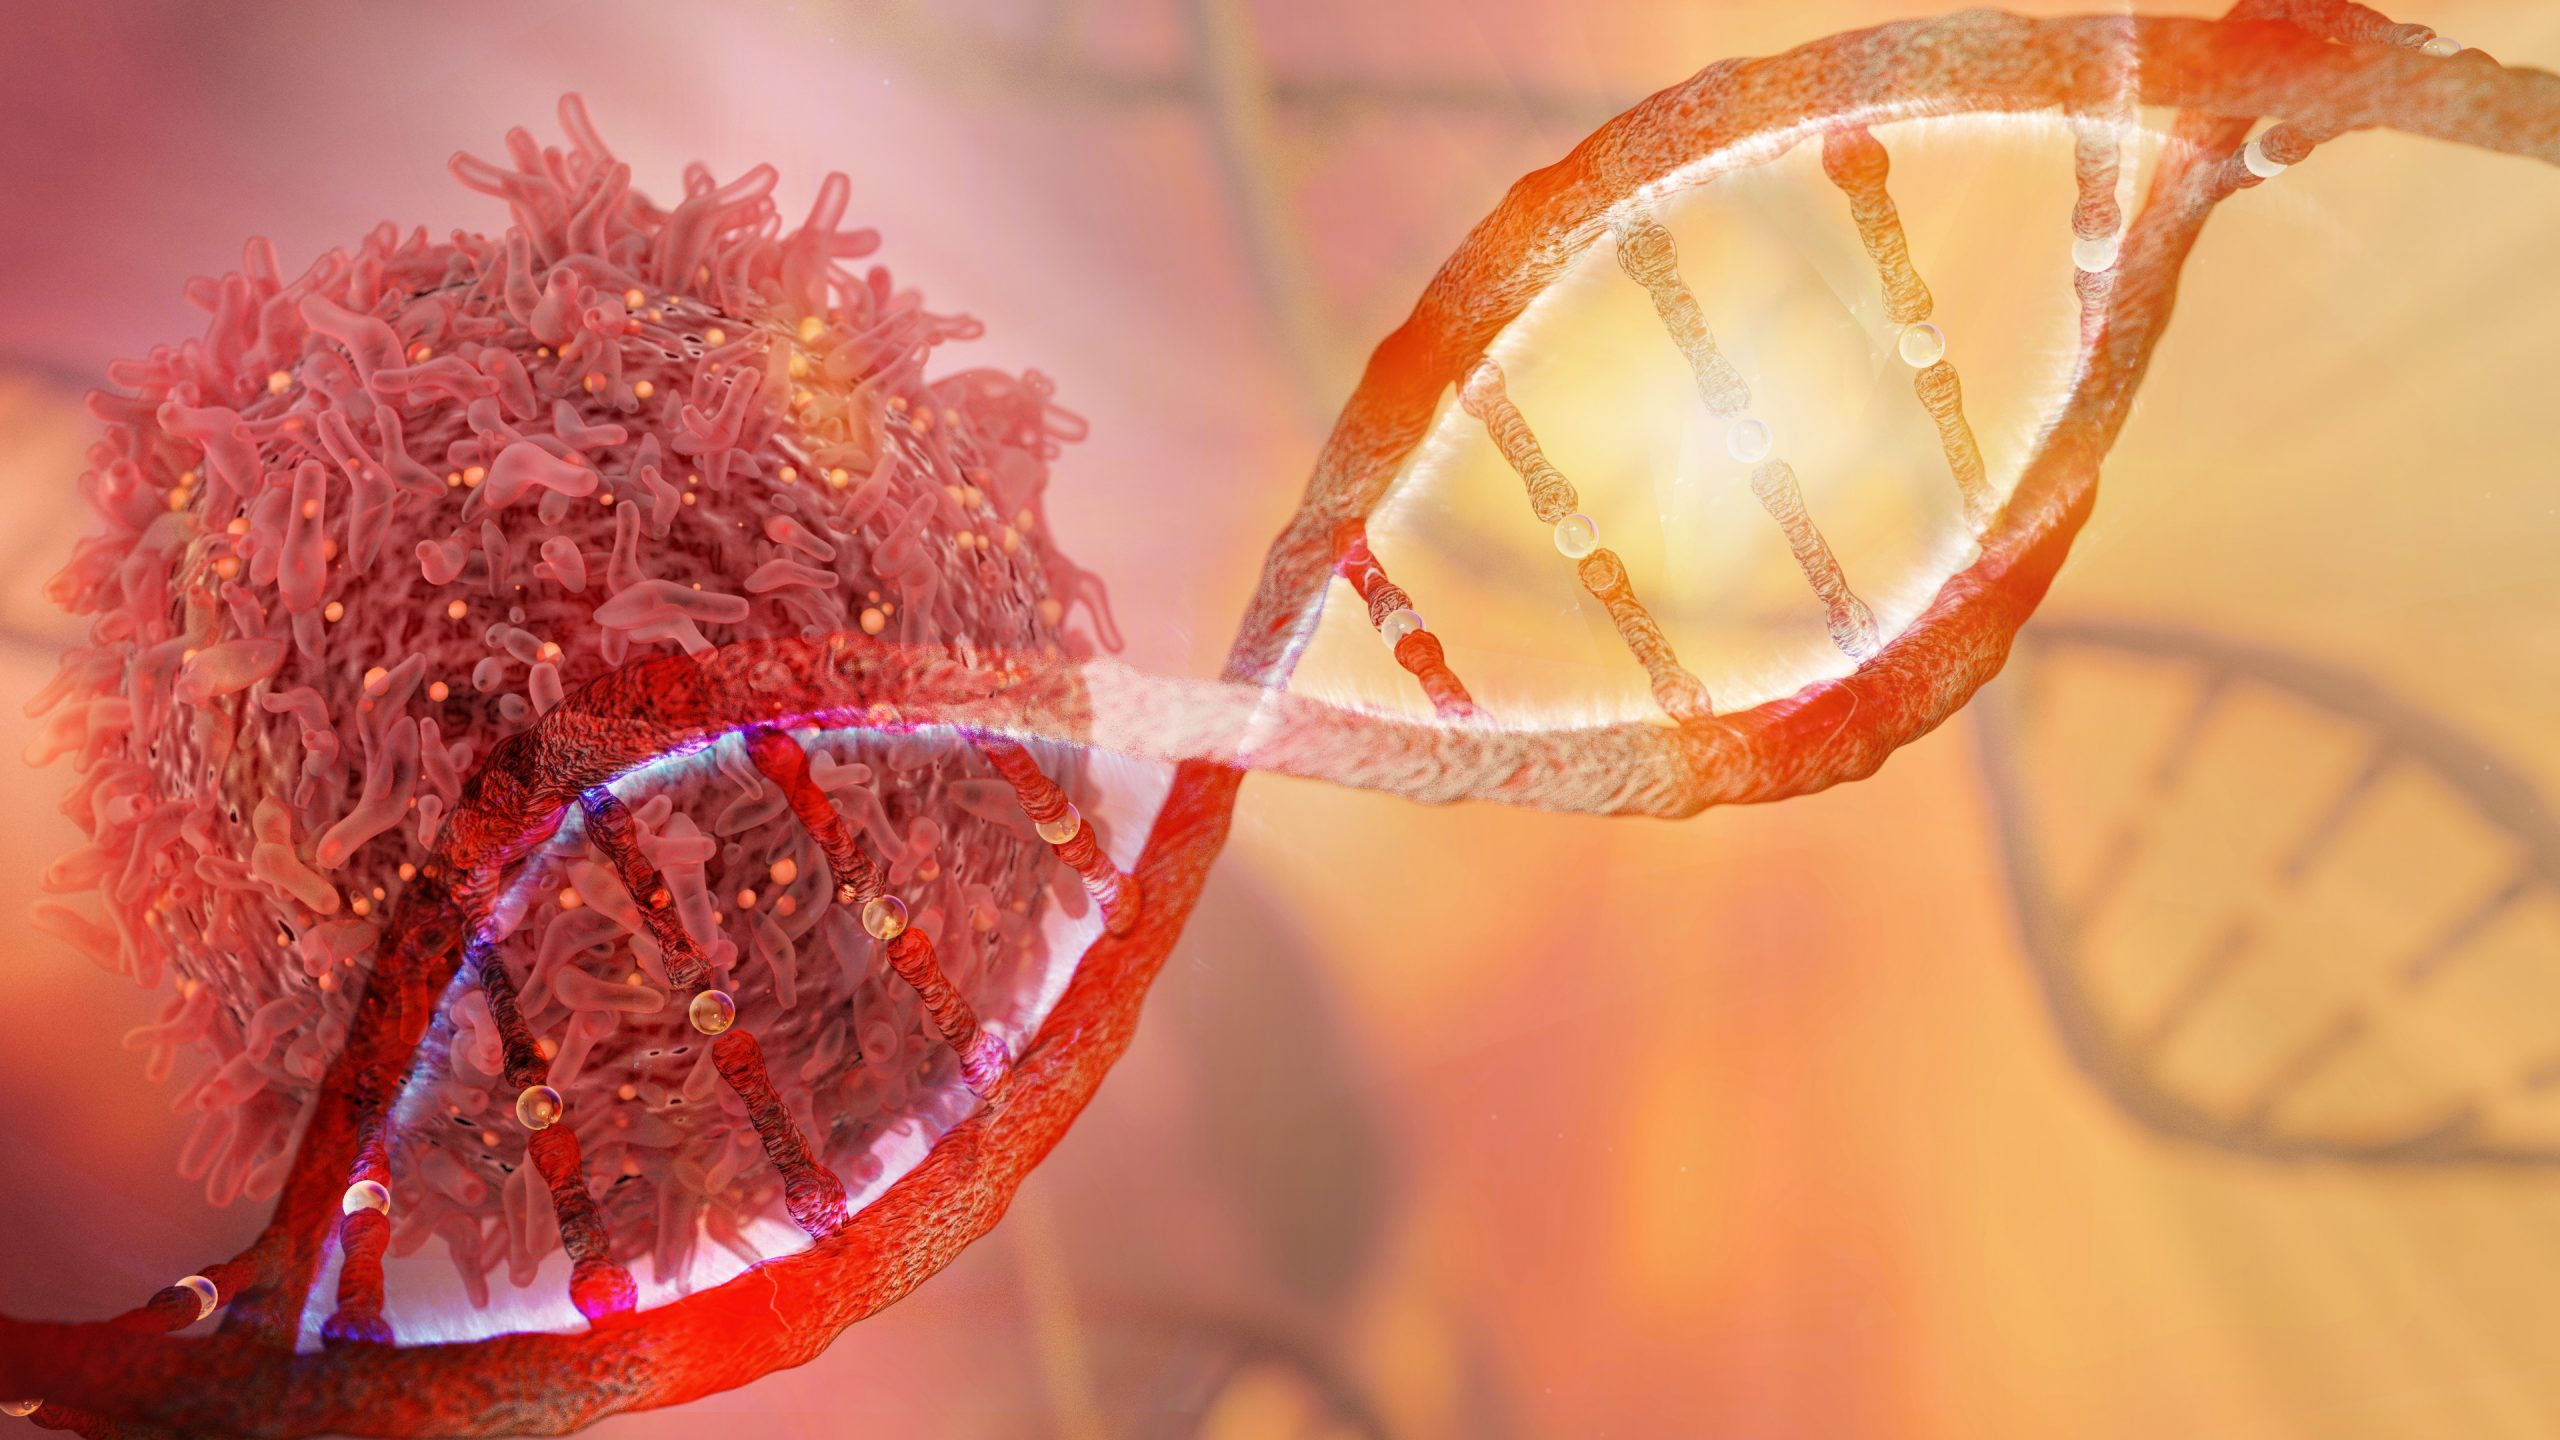 Cancer Biomarker Market Jump on Biggest Revenue Growth by 2031